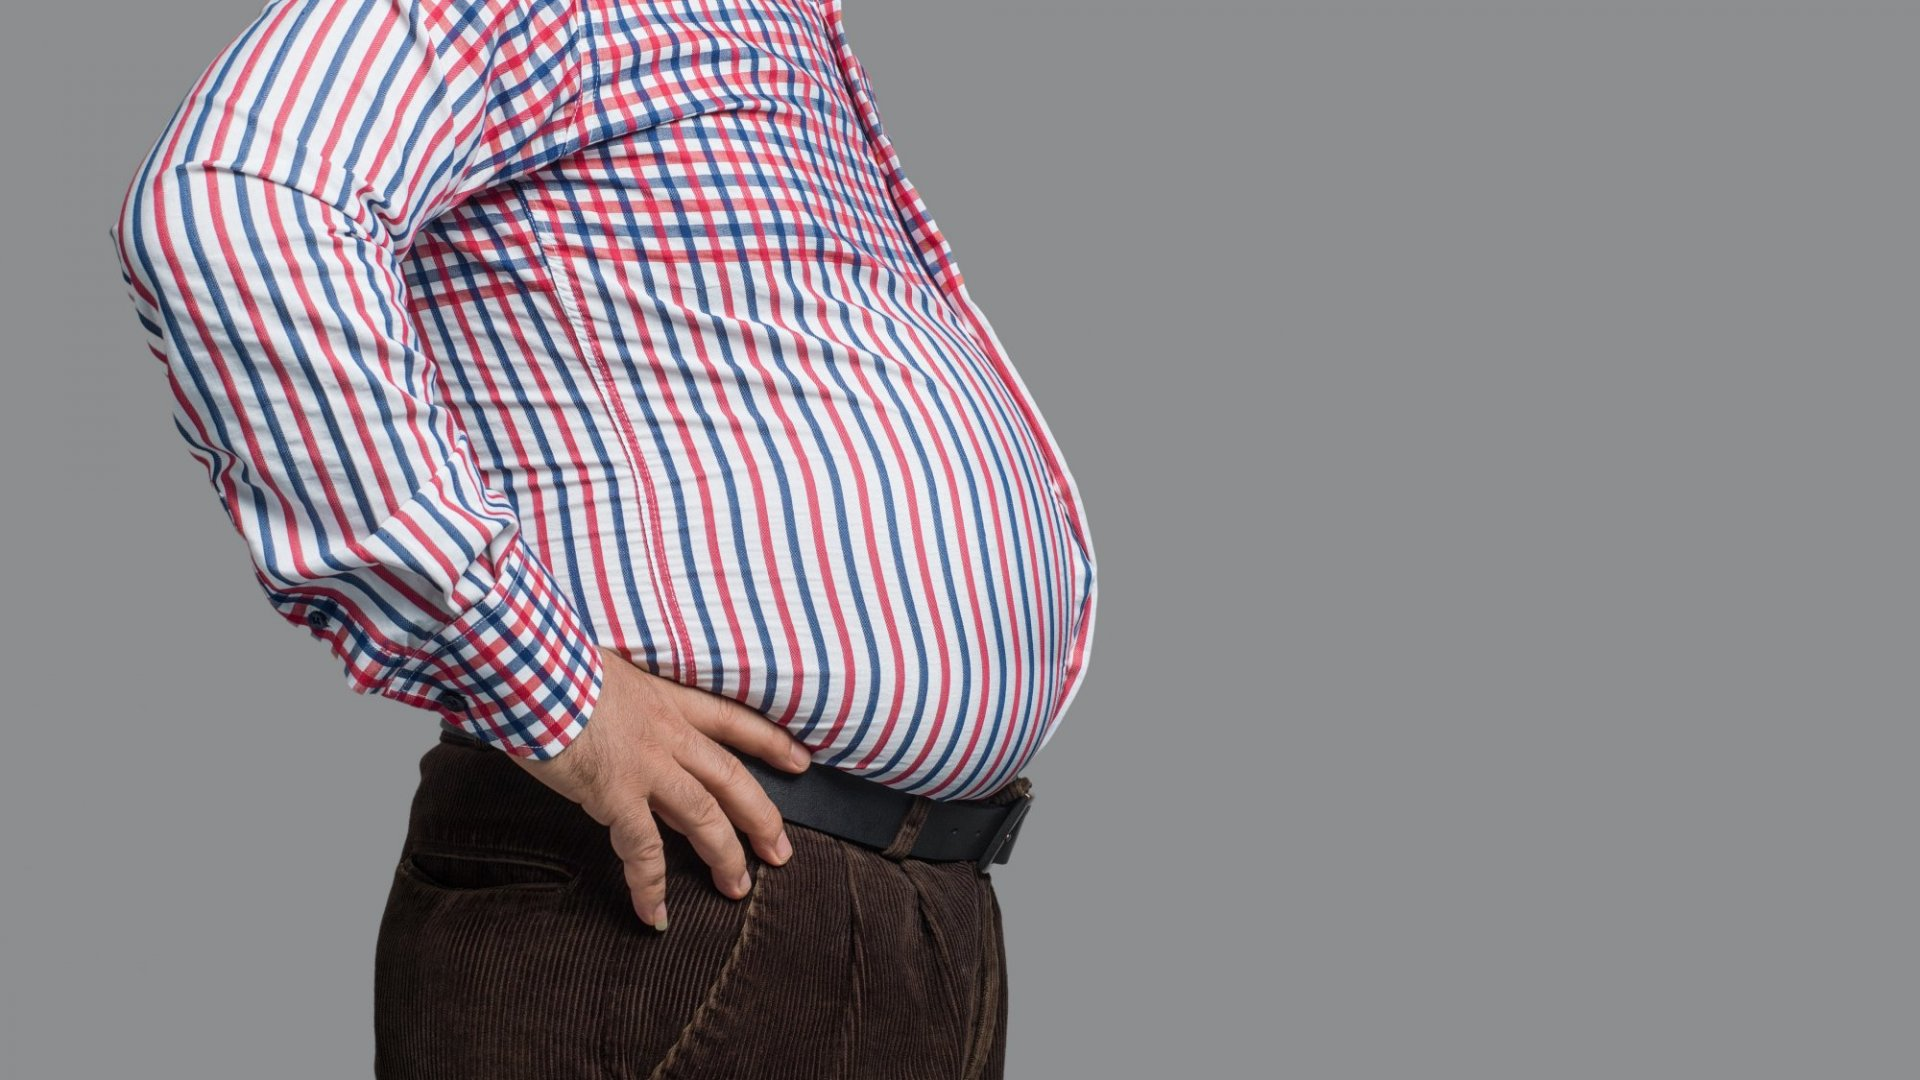 Just How Fat Are Americans? A Stunning New Government Study Just Revealed the Truth in Time for 2019